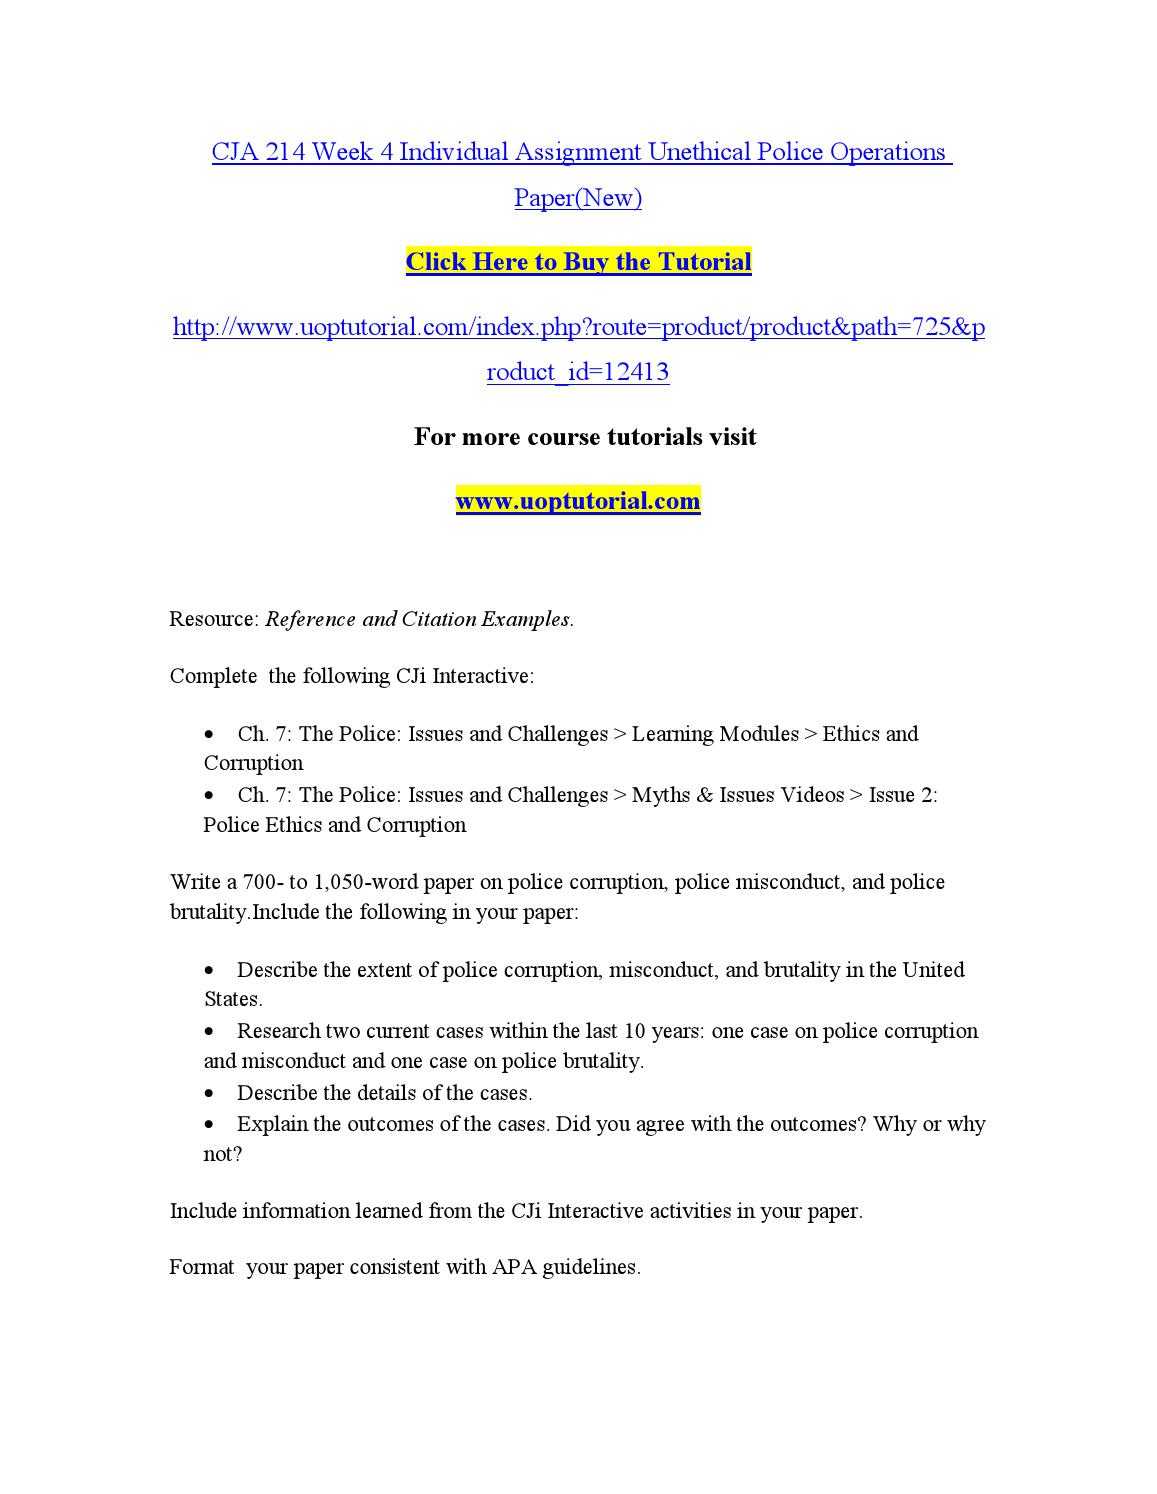 Unethical police operations essay